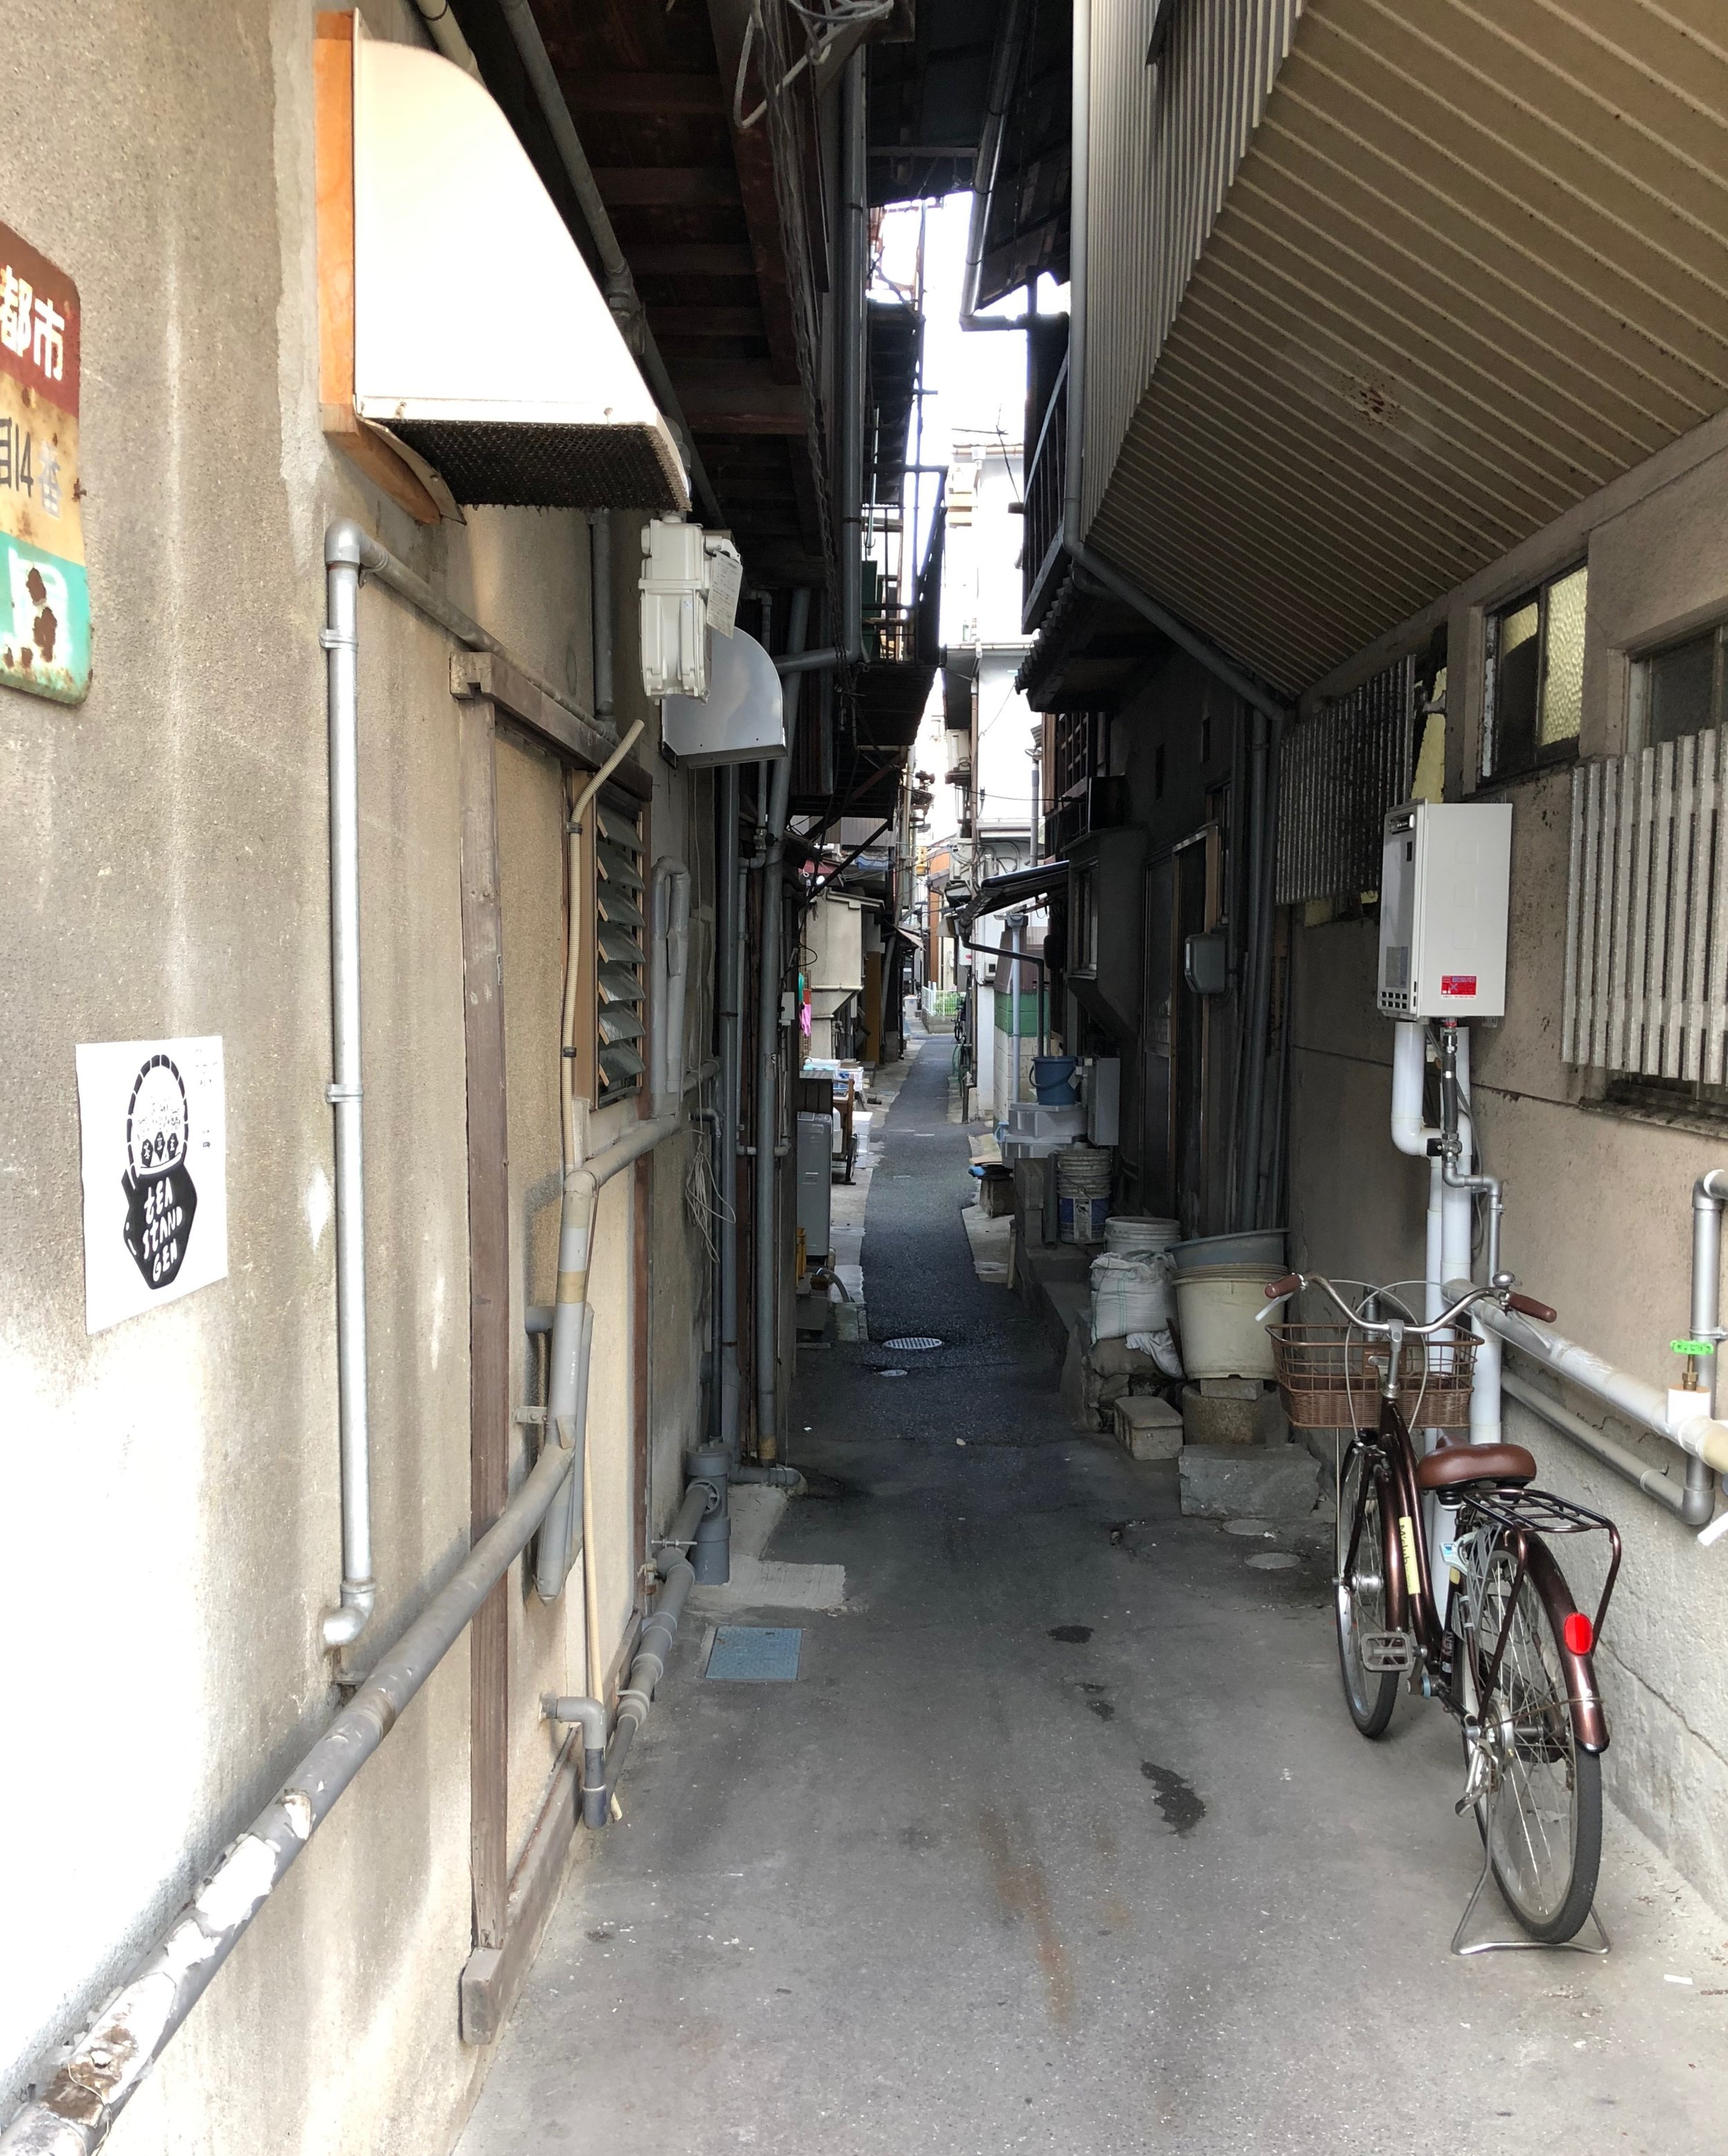 The black and white sign with Tea Stand Gen's logo on the left wall helps visitors find the narrow lane on which the shop is located in the warren of streets of the old port area of Onomichi.